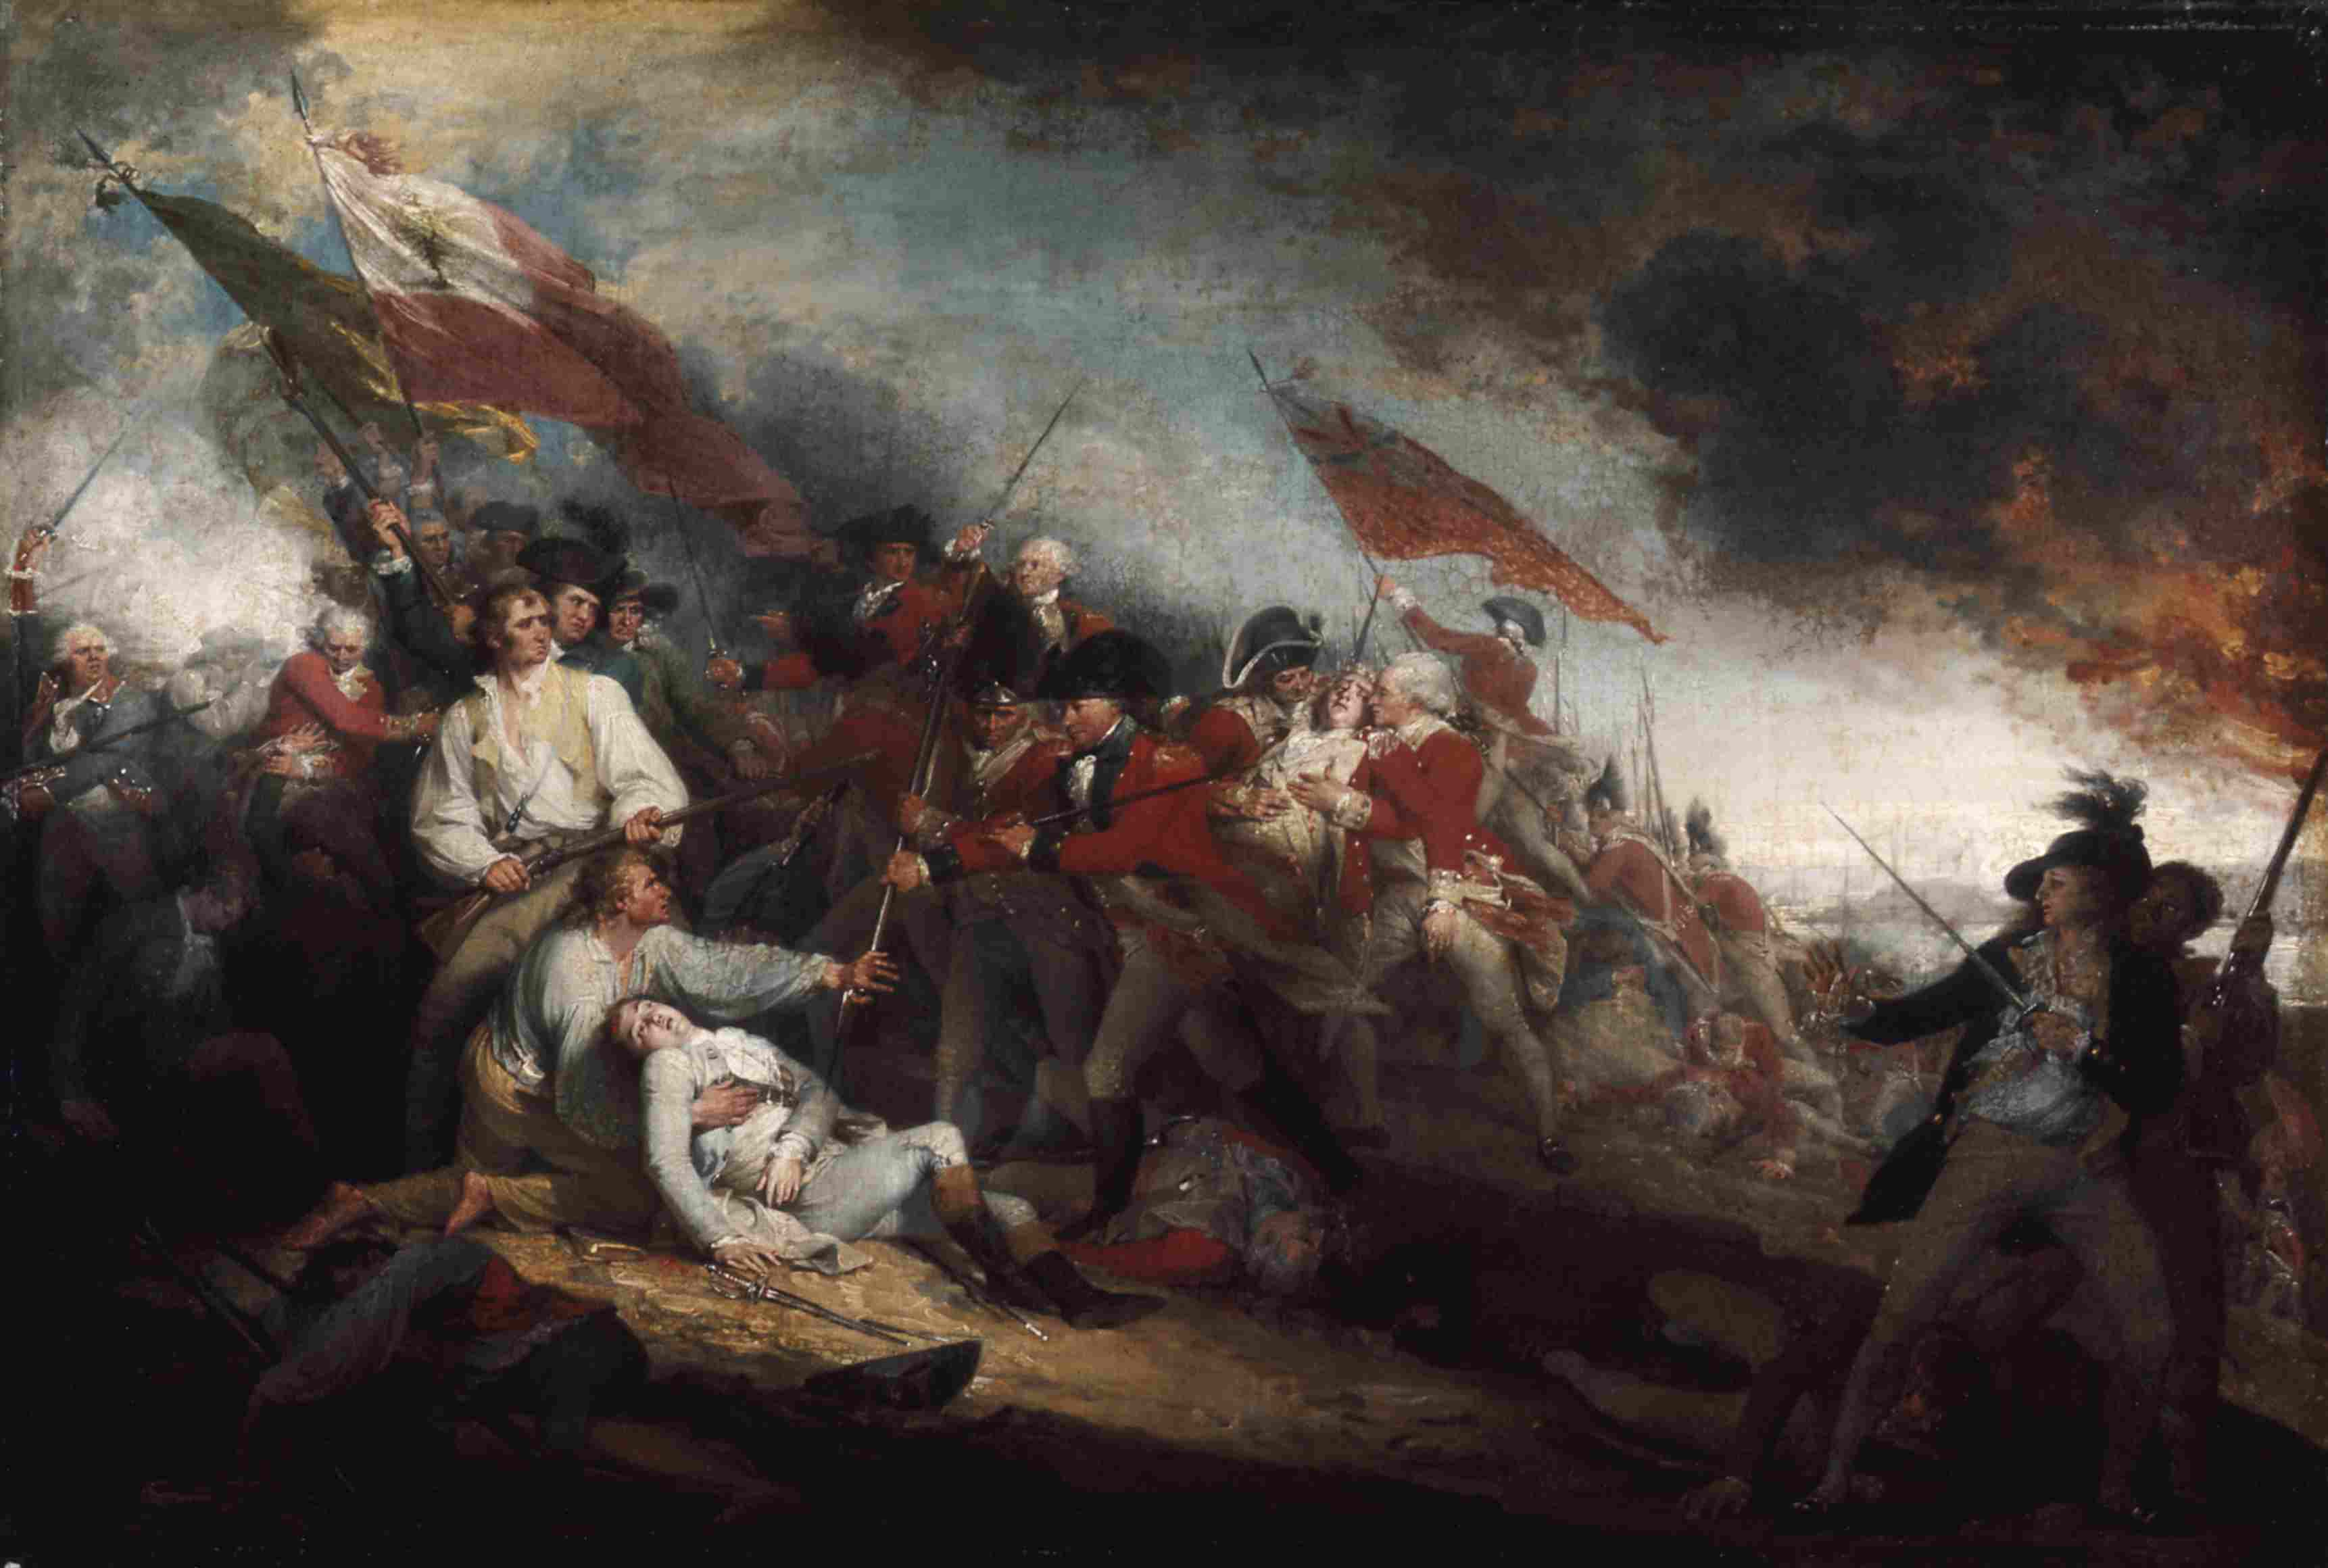 The Death of General Warren at the Battle of Bunker Hill, June 17, 1775, painint by John Trumbull.